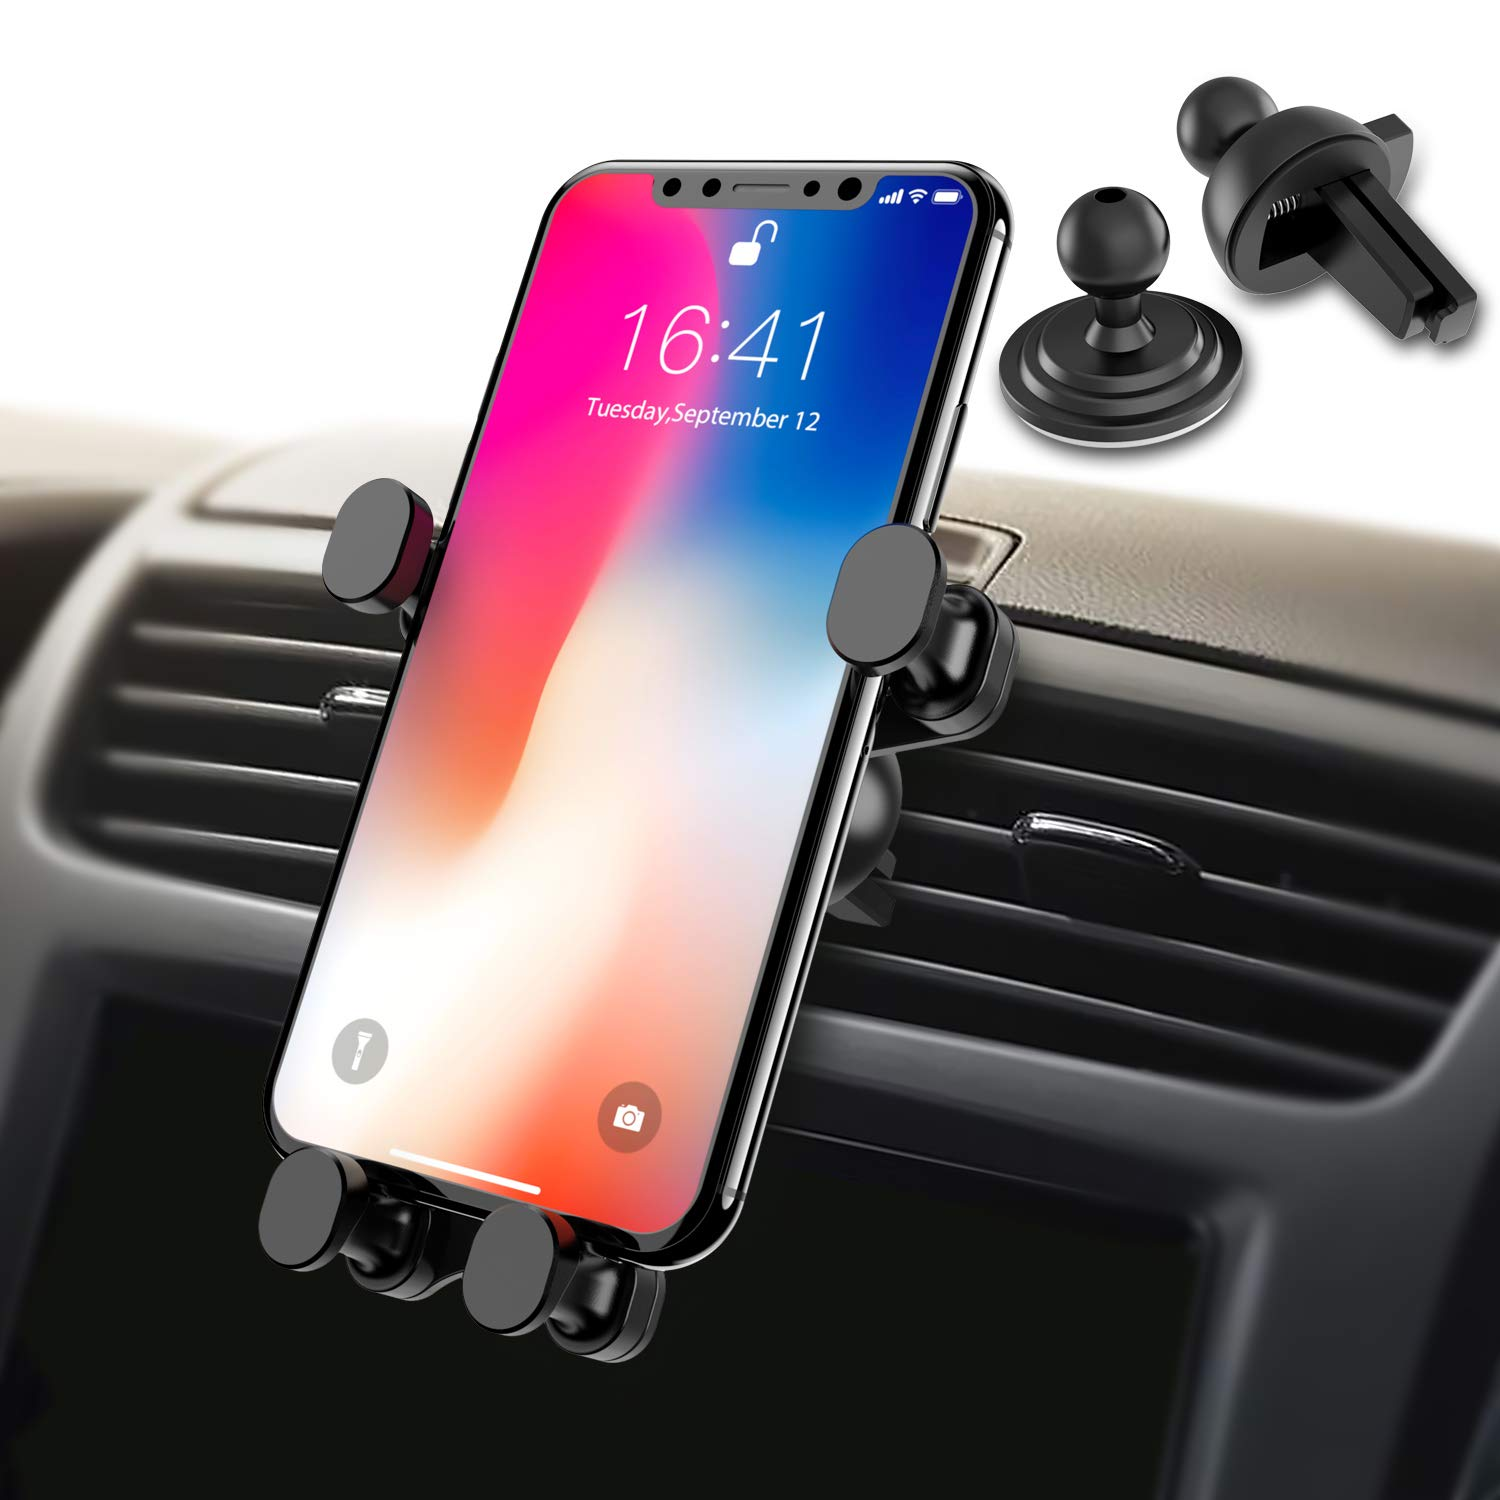 Syncwire 2-in-1 Air Vent Phone Holder, Gravity Automatic Locking Universal Car Cell Phone Mount Compatible iPhone Xs MAX/XS/XR/X/8/8 Plus, Samsung Galaxy S10 Plus/S10/S9/S8/S7/Note Series and More by Syncwire